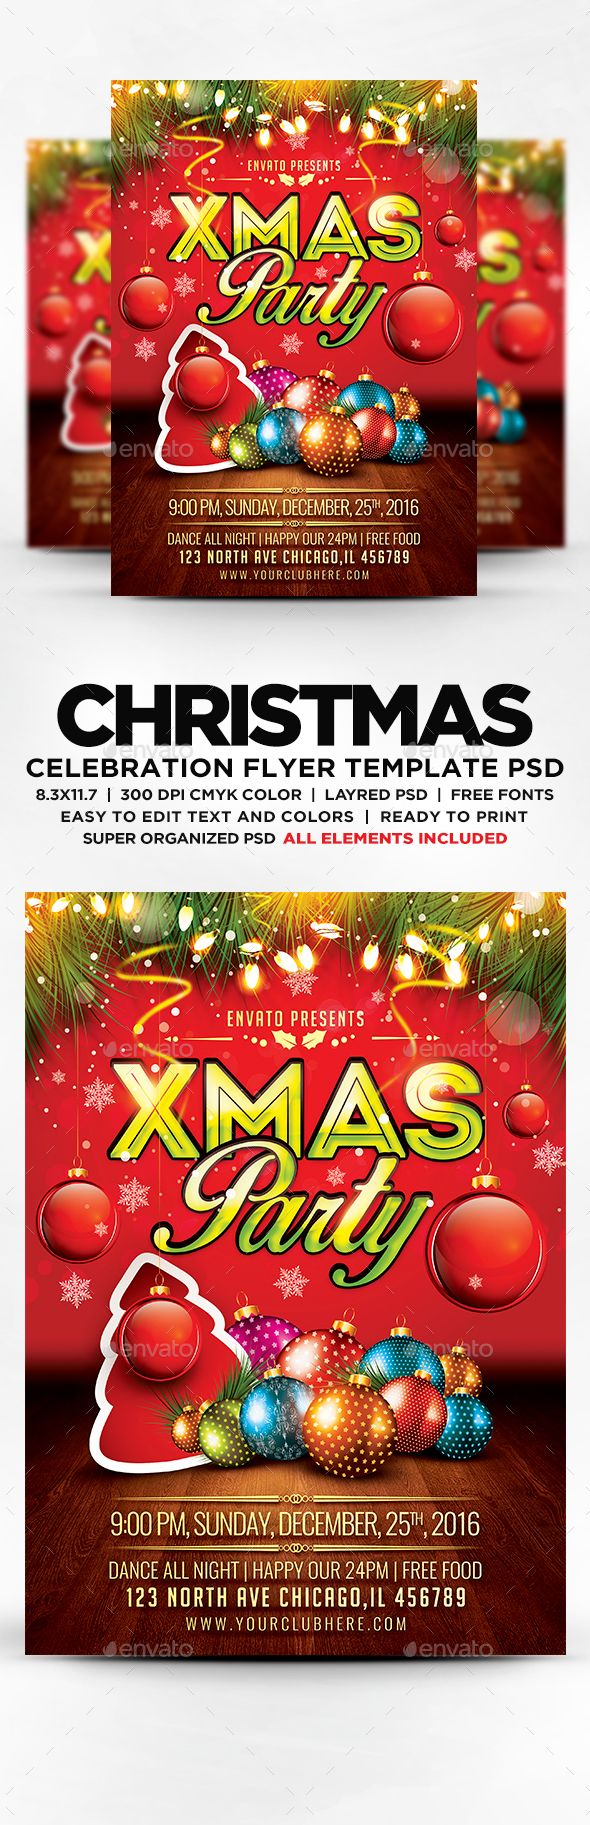 17 best christmas psd templates images on pinterest christmas xmas party flyer events flyers stopboris Choice Image